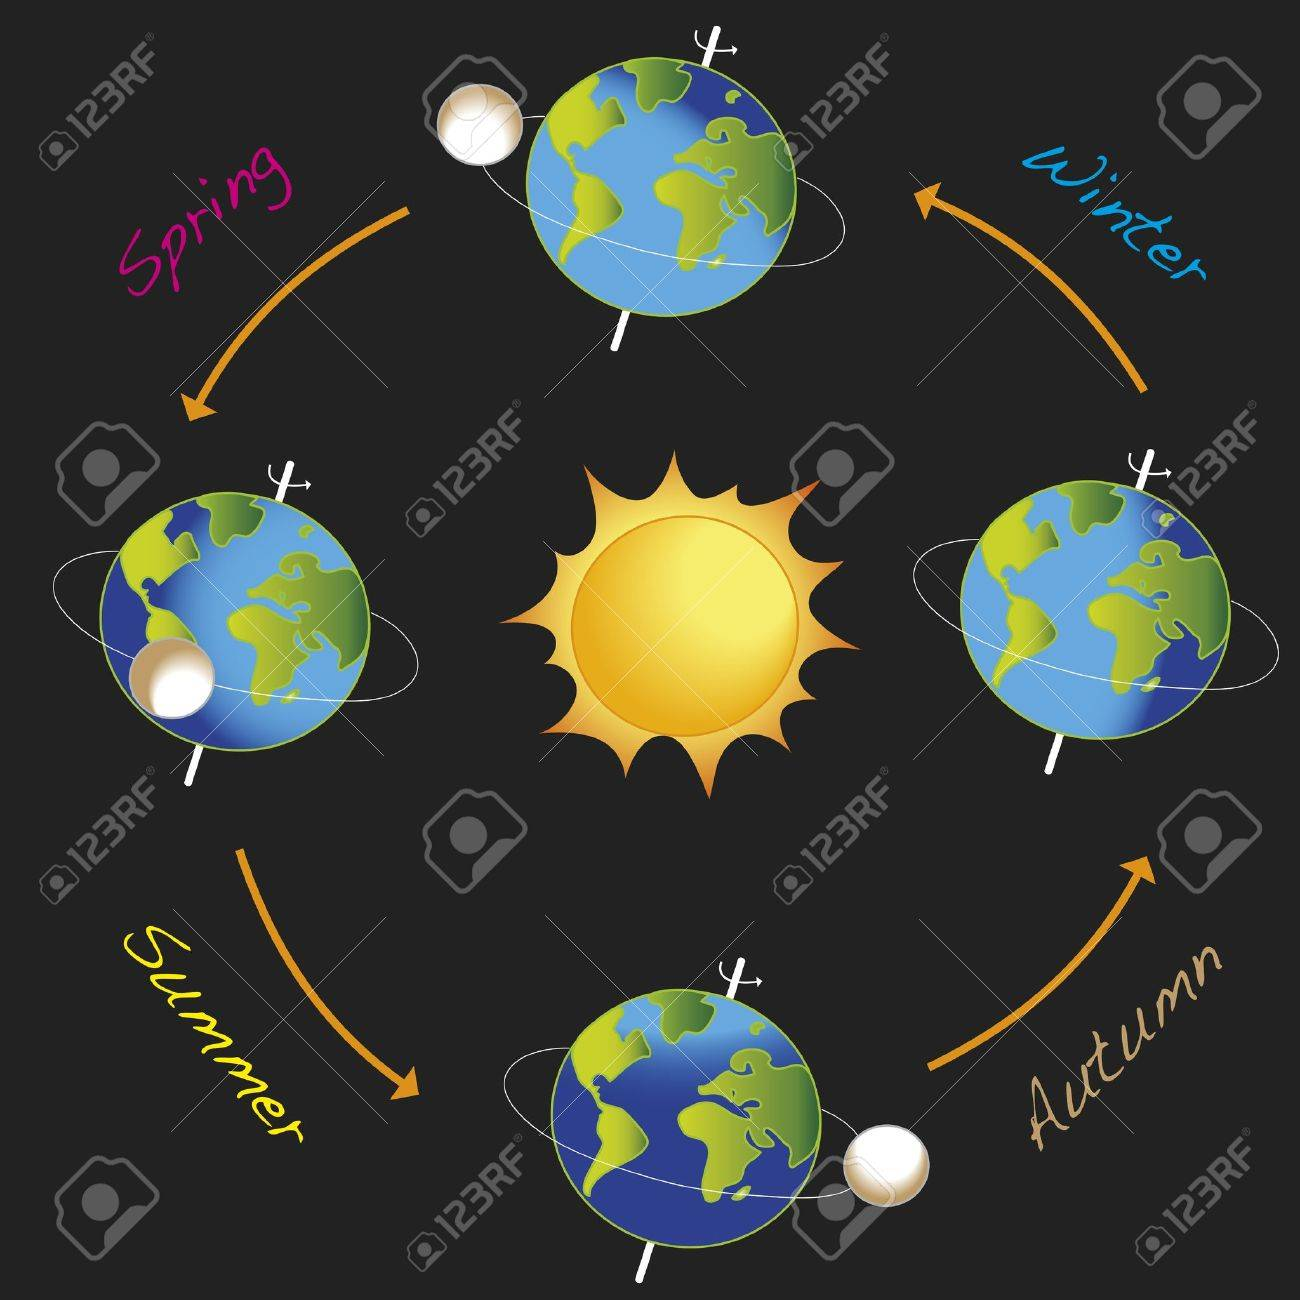 Earth Revolves Around The Sun Stock Photo, Picture And Royalty ...